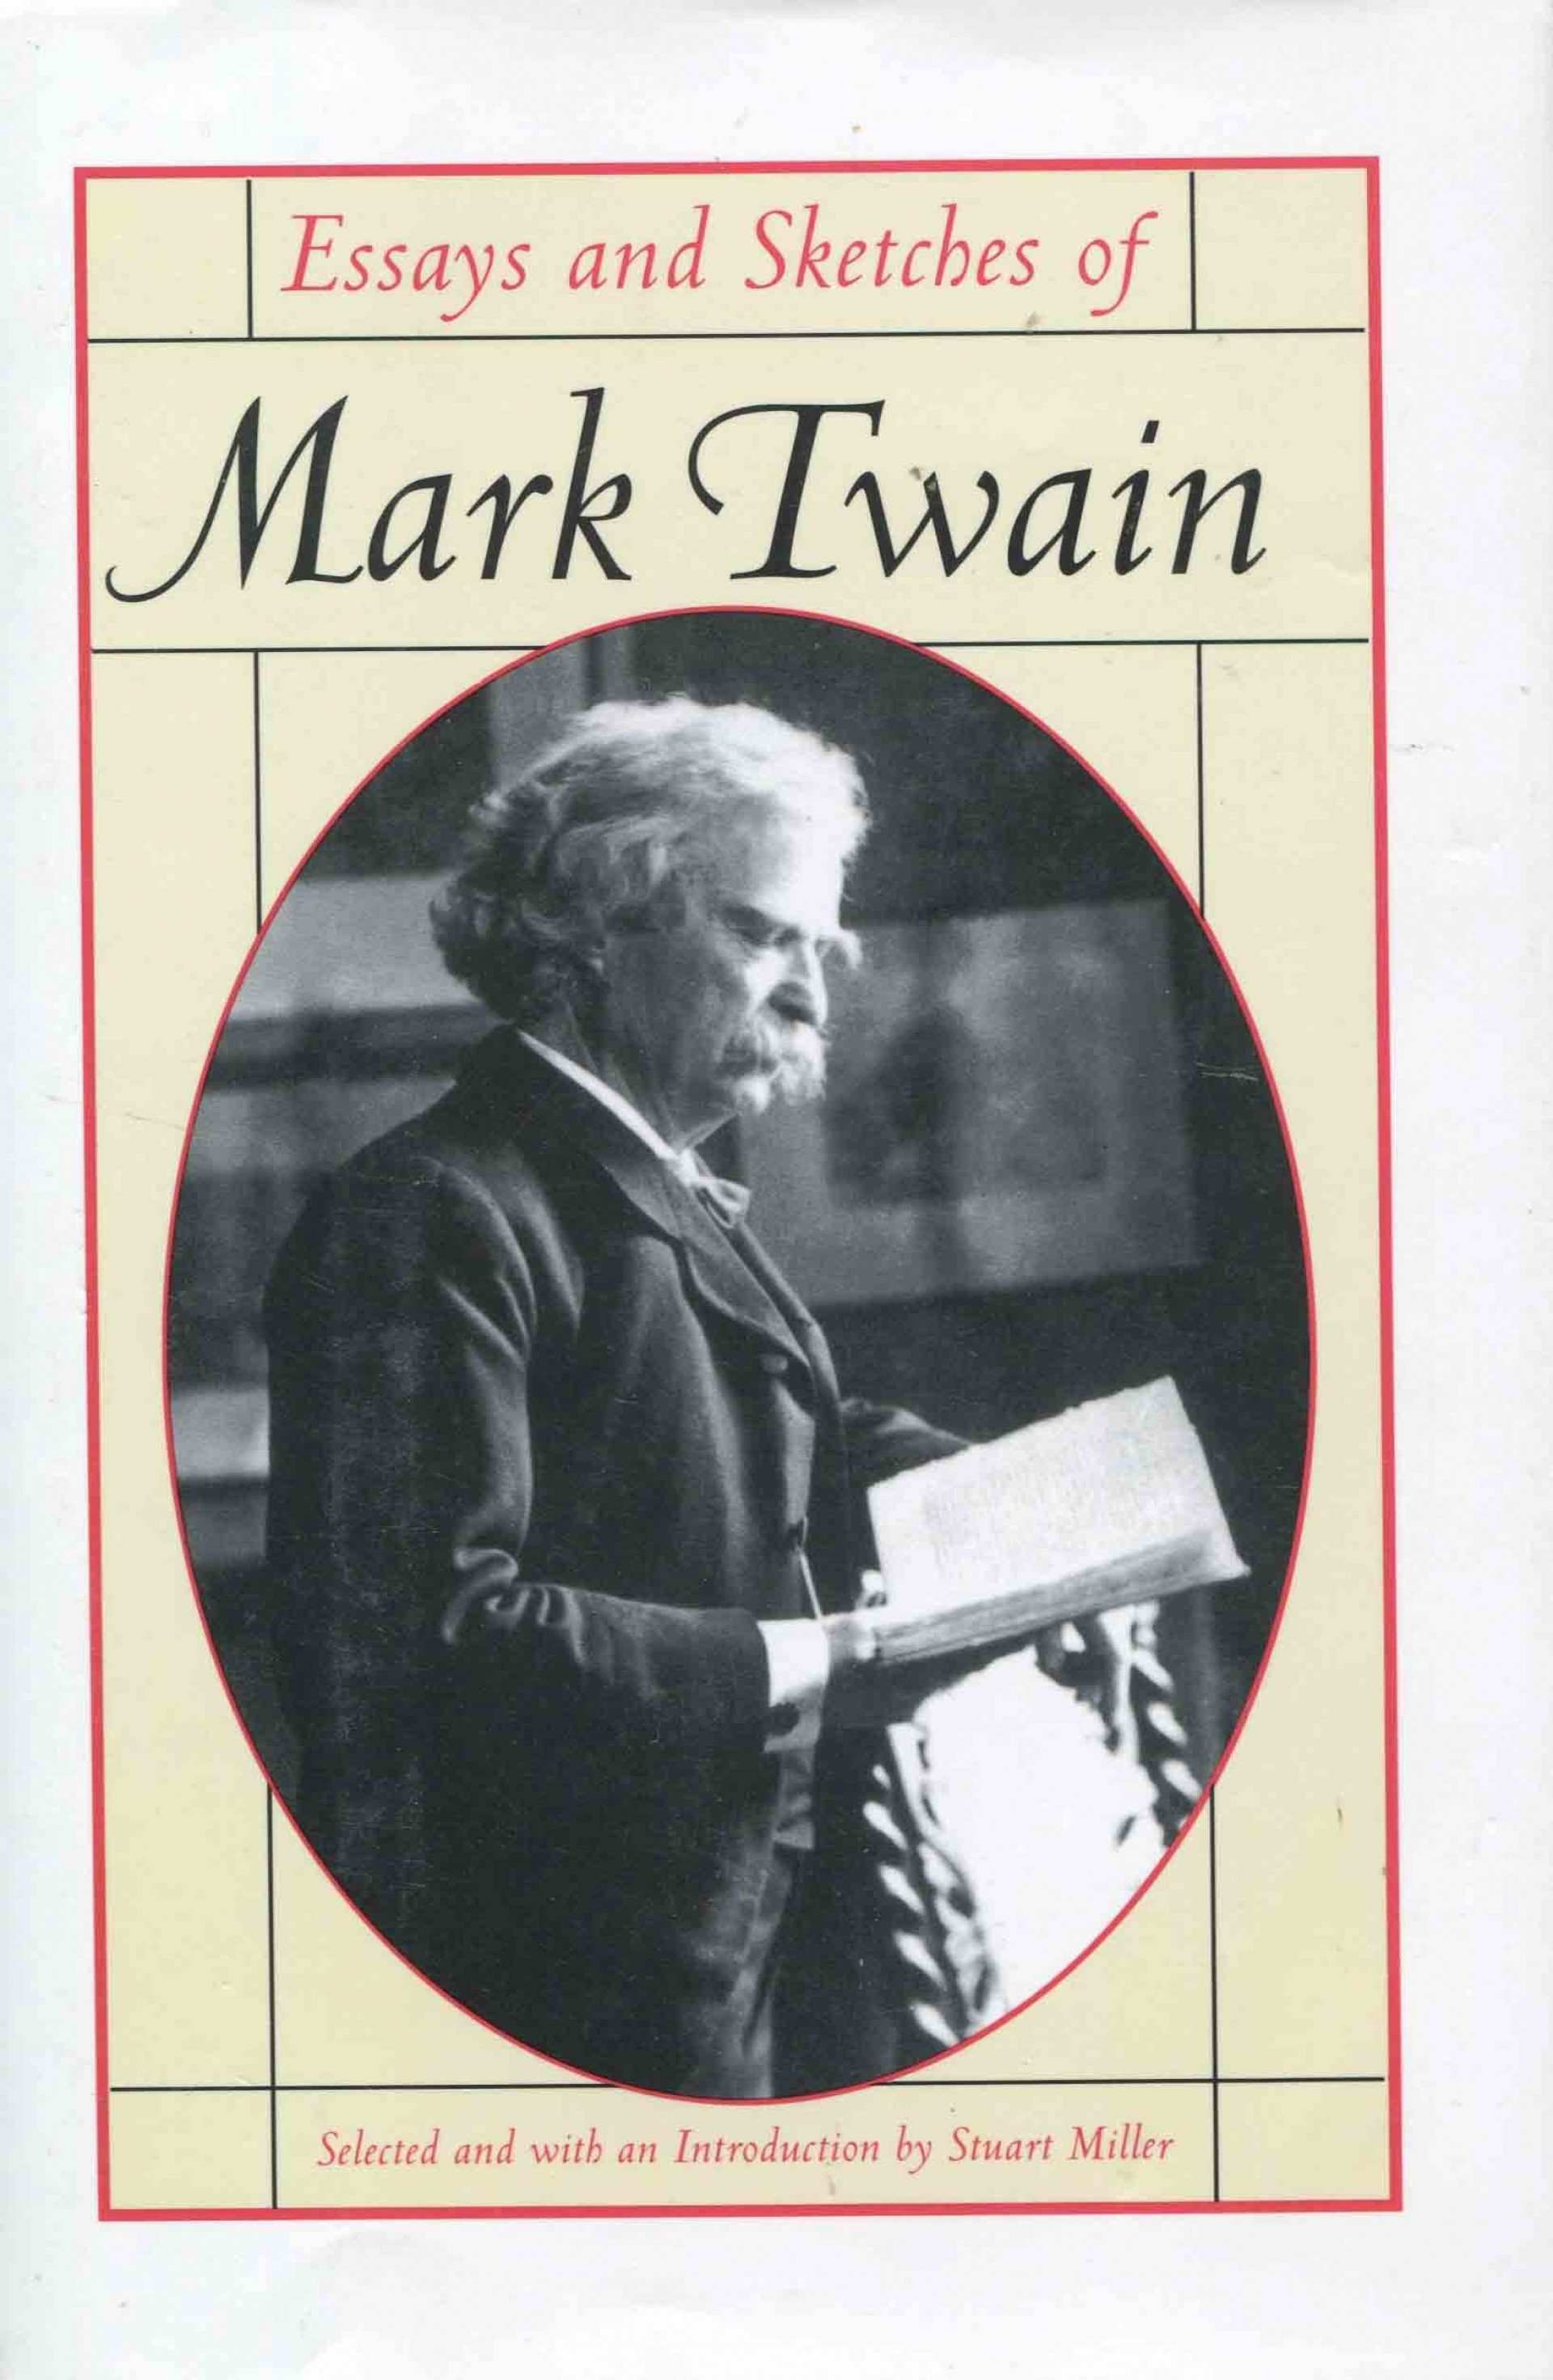 018 Mark Twain Essays 71ujezudo4l Essay Surprising Collected Tales Sketches Speeches And On Writing Post Civil War 1920